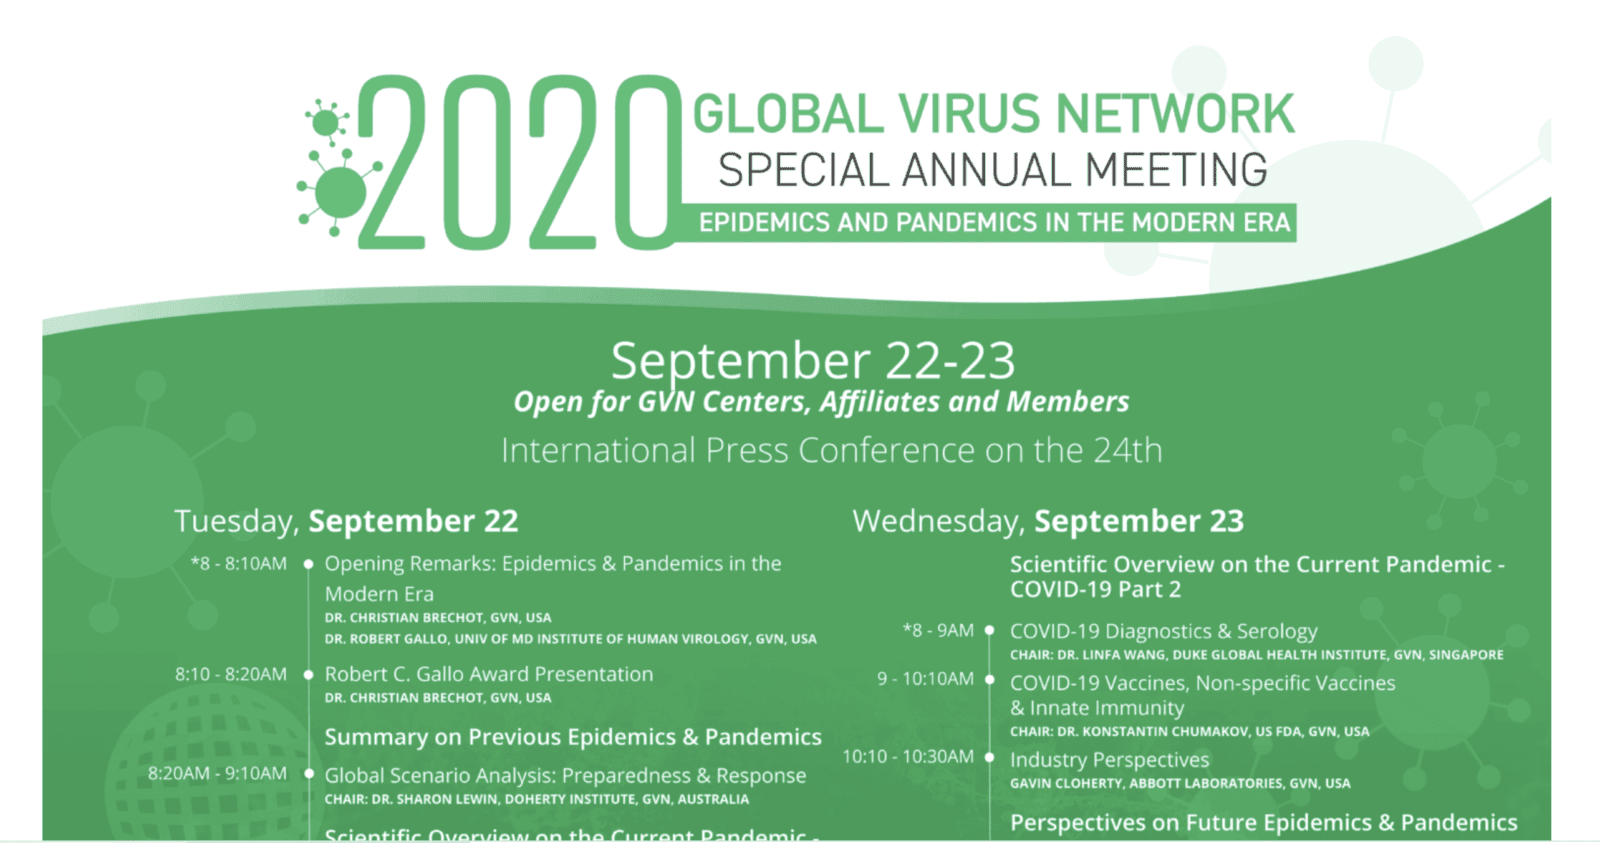 2020 GVN Special Annual Meeting: Epidemics & Pandemics in the Modern Era 1